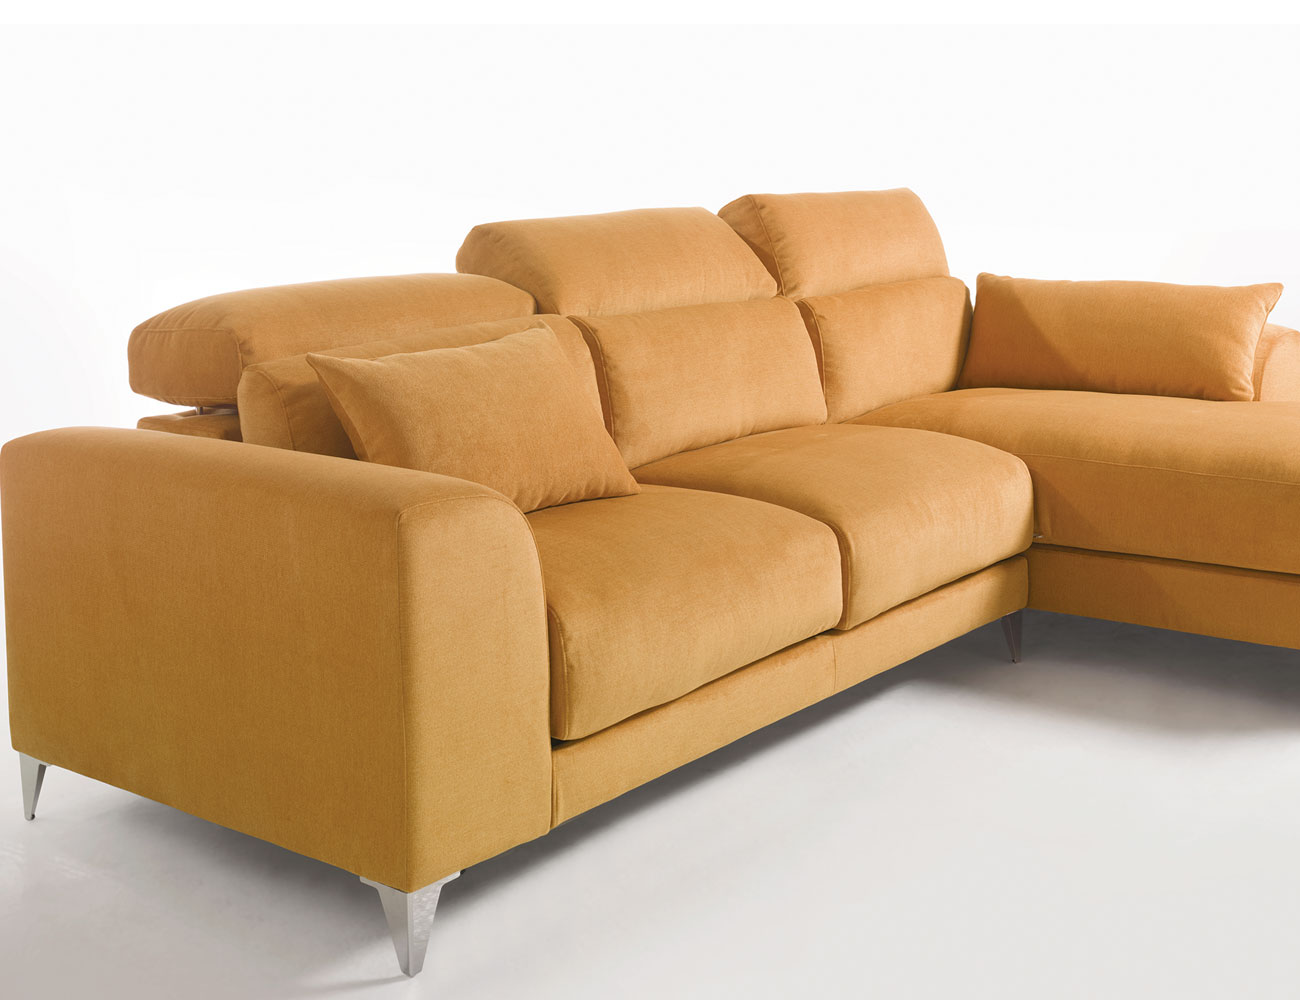 Sofa chaiselongue gran lujo decorativo patas altas amarillo 212